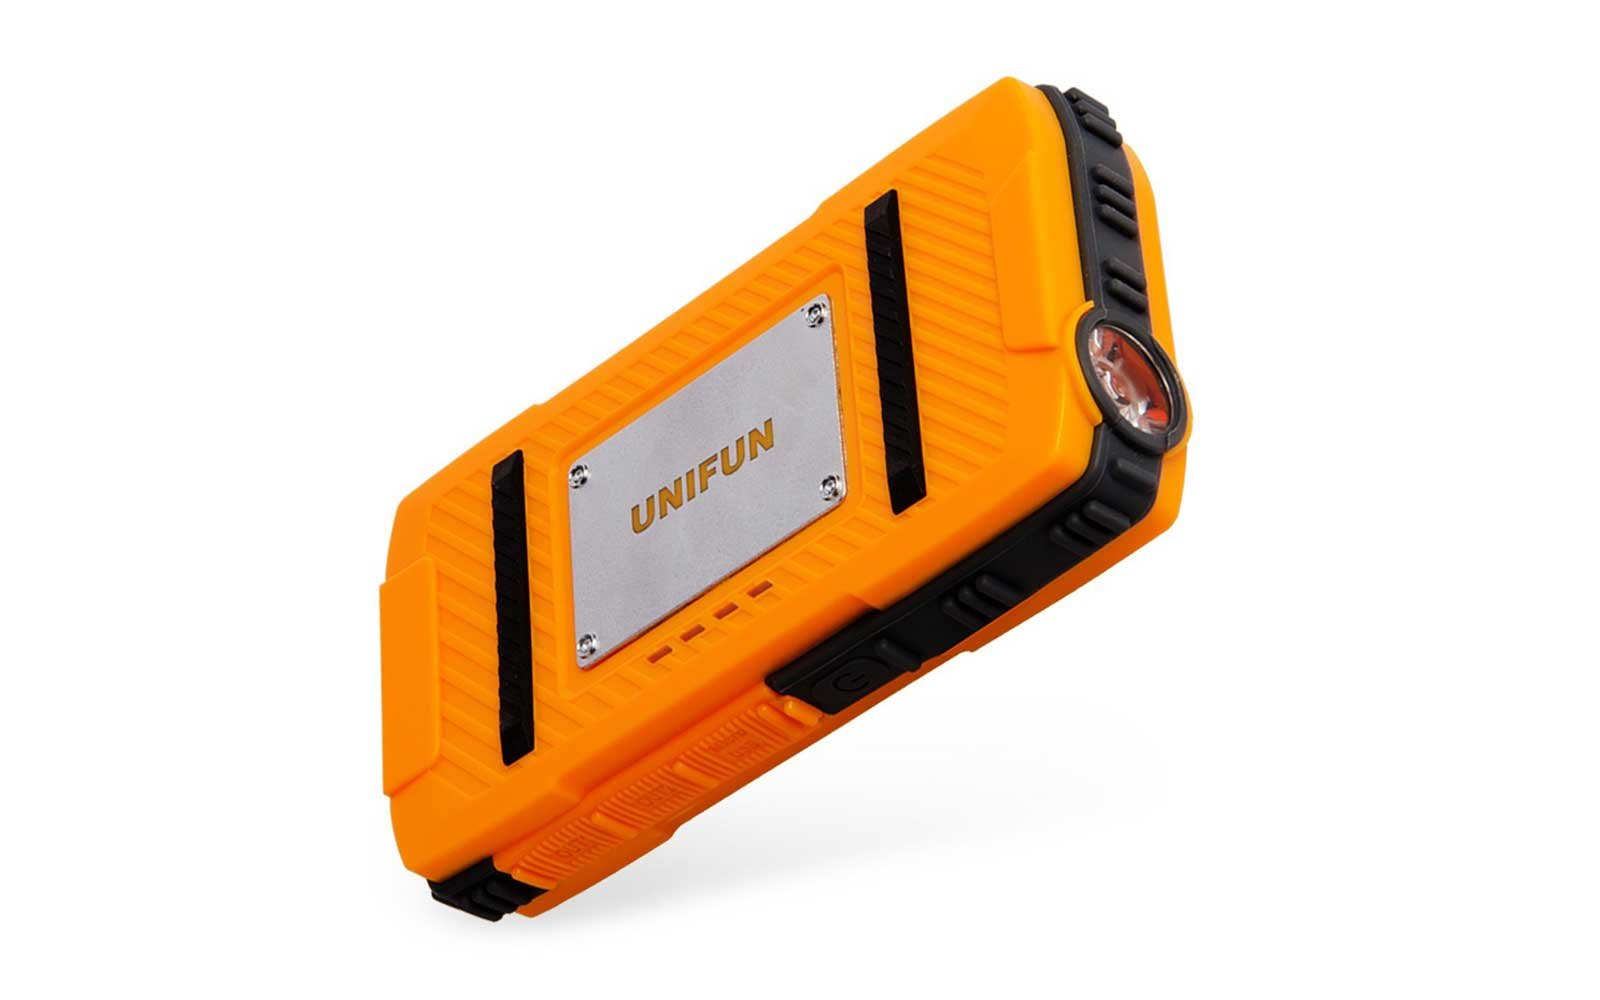 Unifun 10400mAh Waterproof External Battery Charger